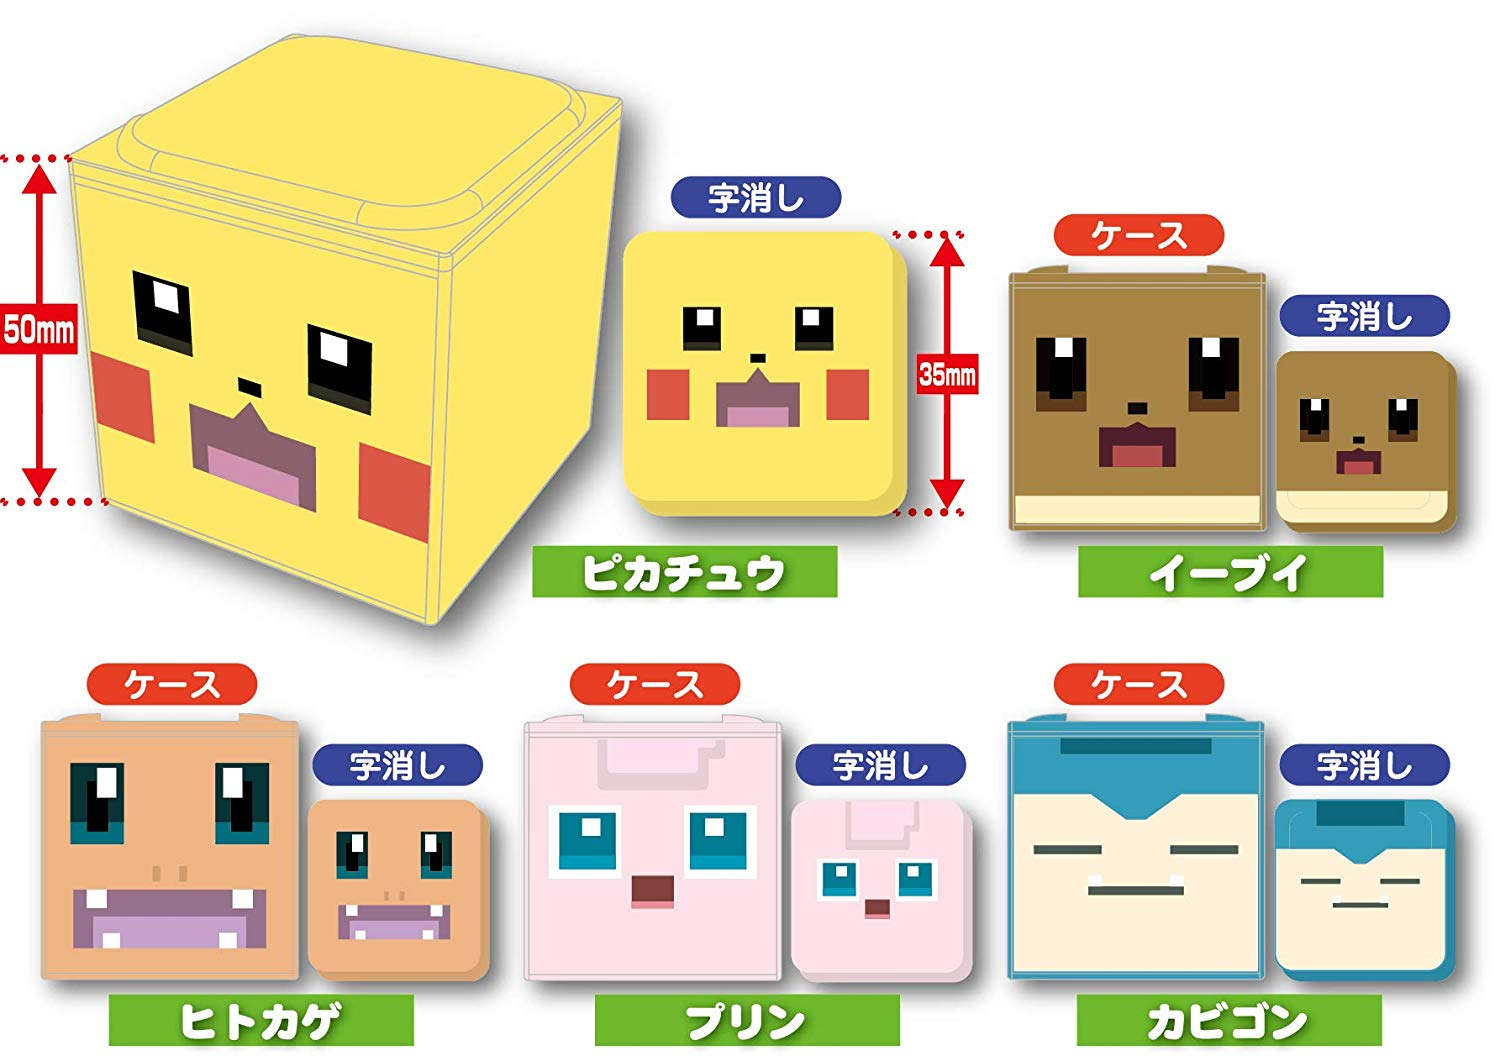 pokemon-quest-merchandise-Pokuseru-boxen